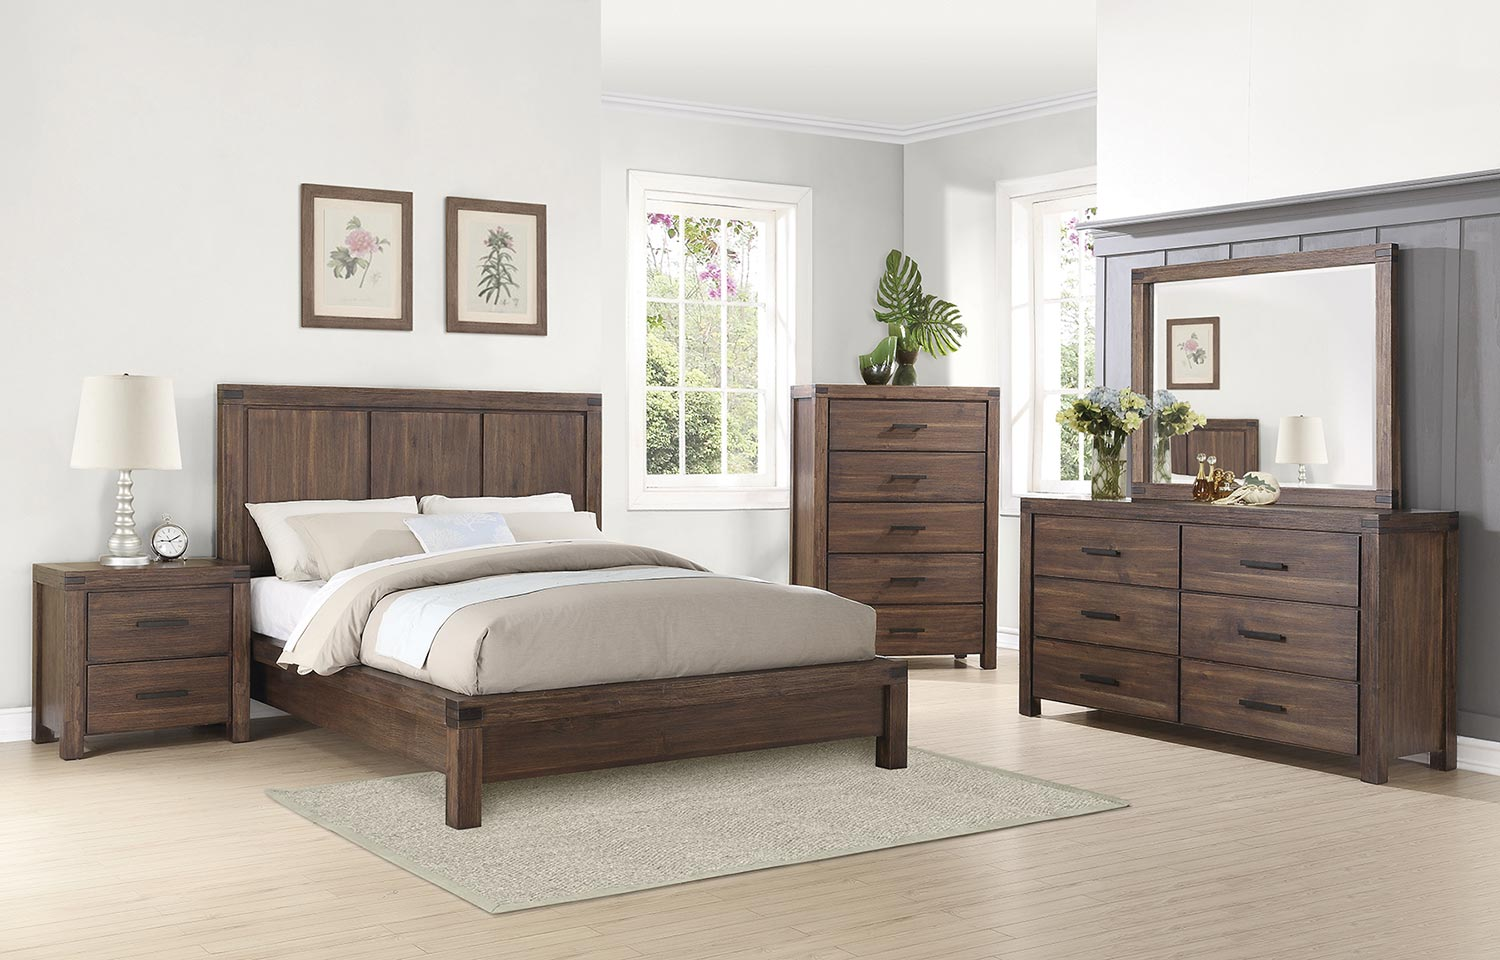 Coaster Lancashire Platform Bedroom Set Cinnamon BEDROOM SET at Home